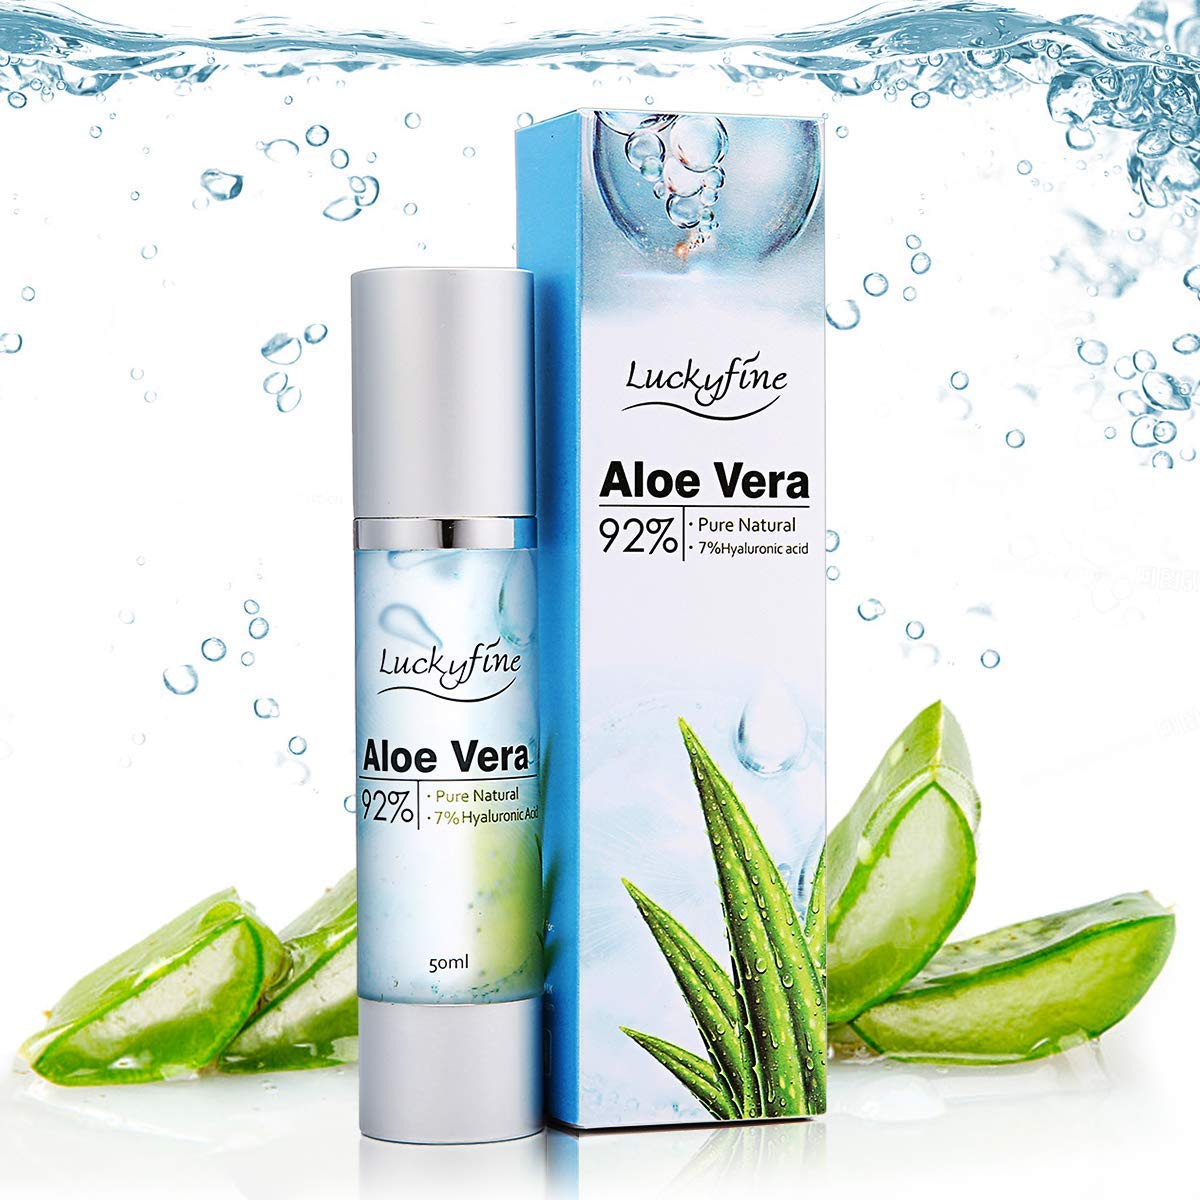 Luckyfine Aloe Vera Essence for Face, Natural 92% Aloe Vera & 7% Hyaluronic Acid, Soothing & Moisture for Acne, Sunburn, Itchy, Dry Skin, Facial Moisturizing, Face Whitening Y.F.M